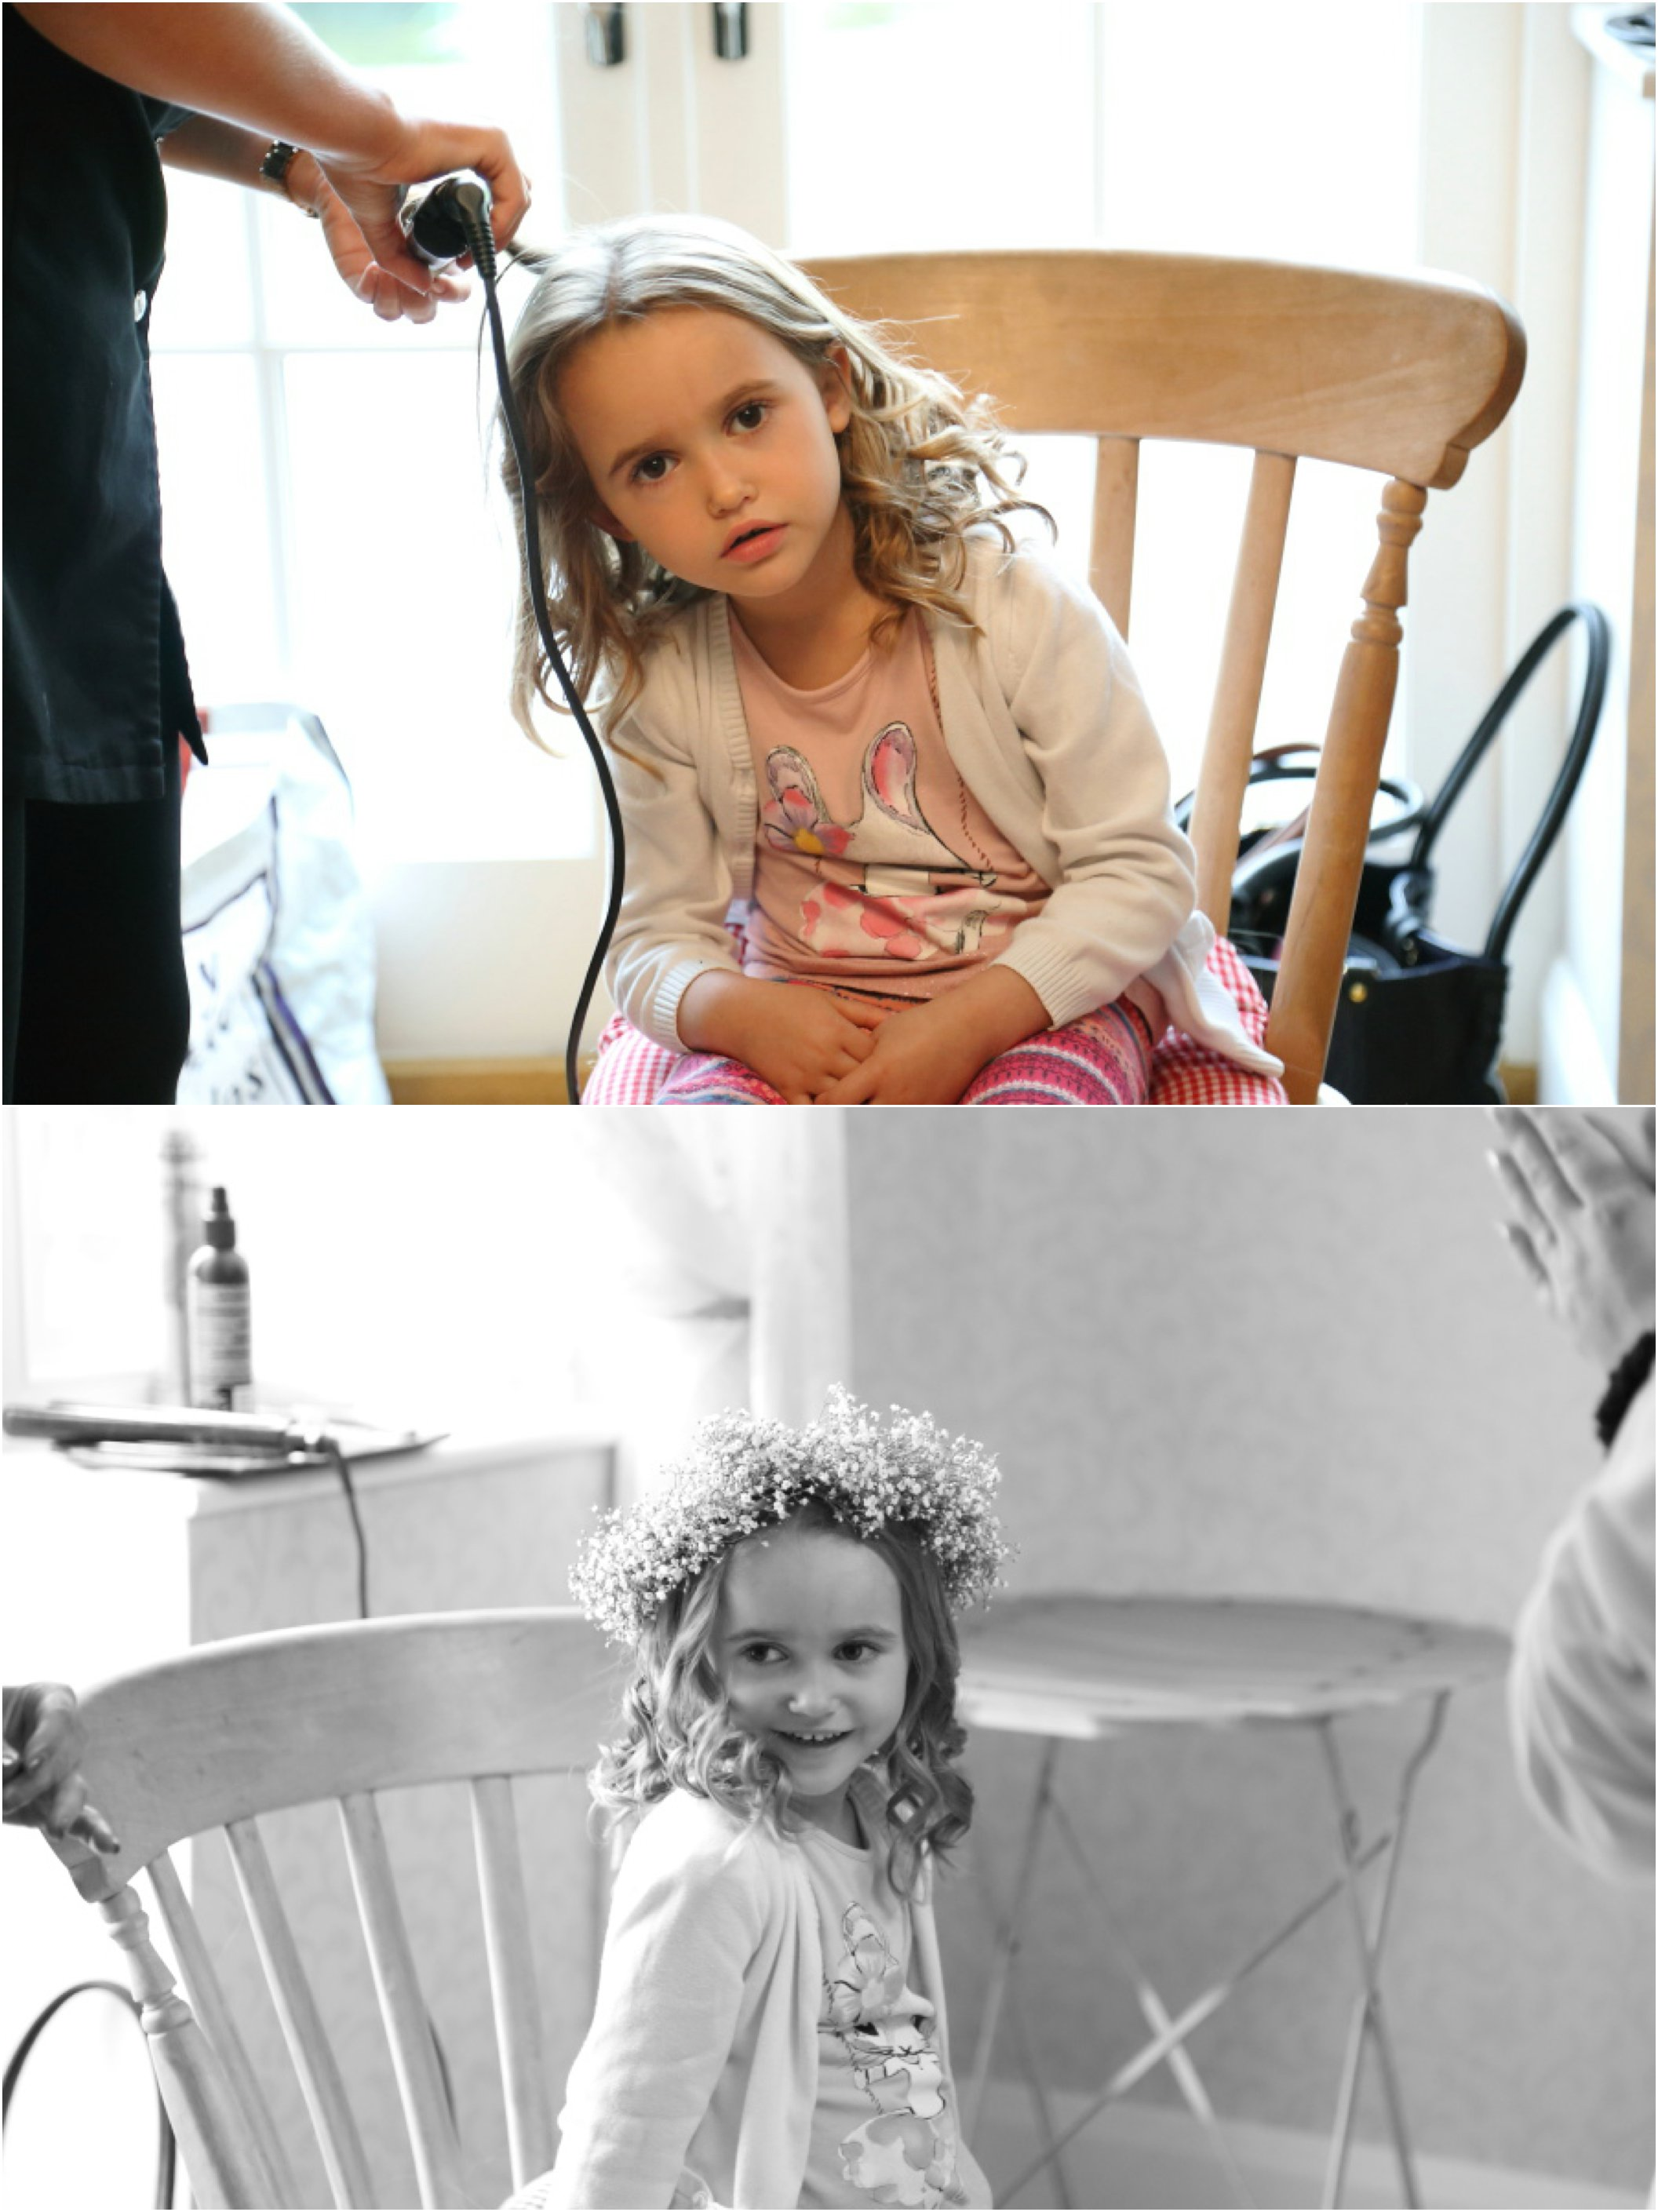 essex-alternative-wedding-photography / flowe girl with floral crown